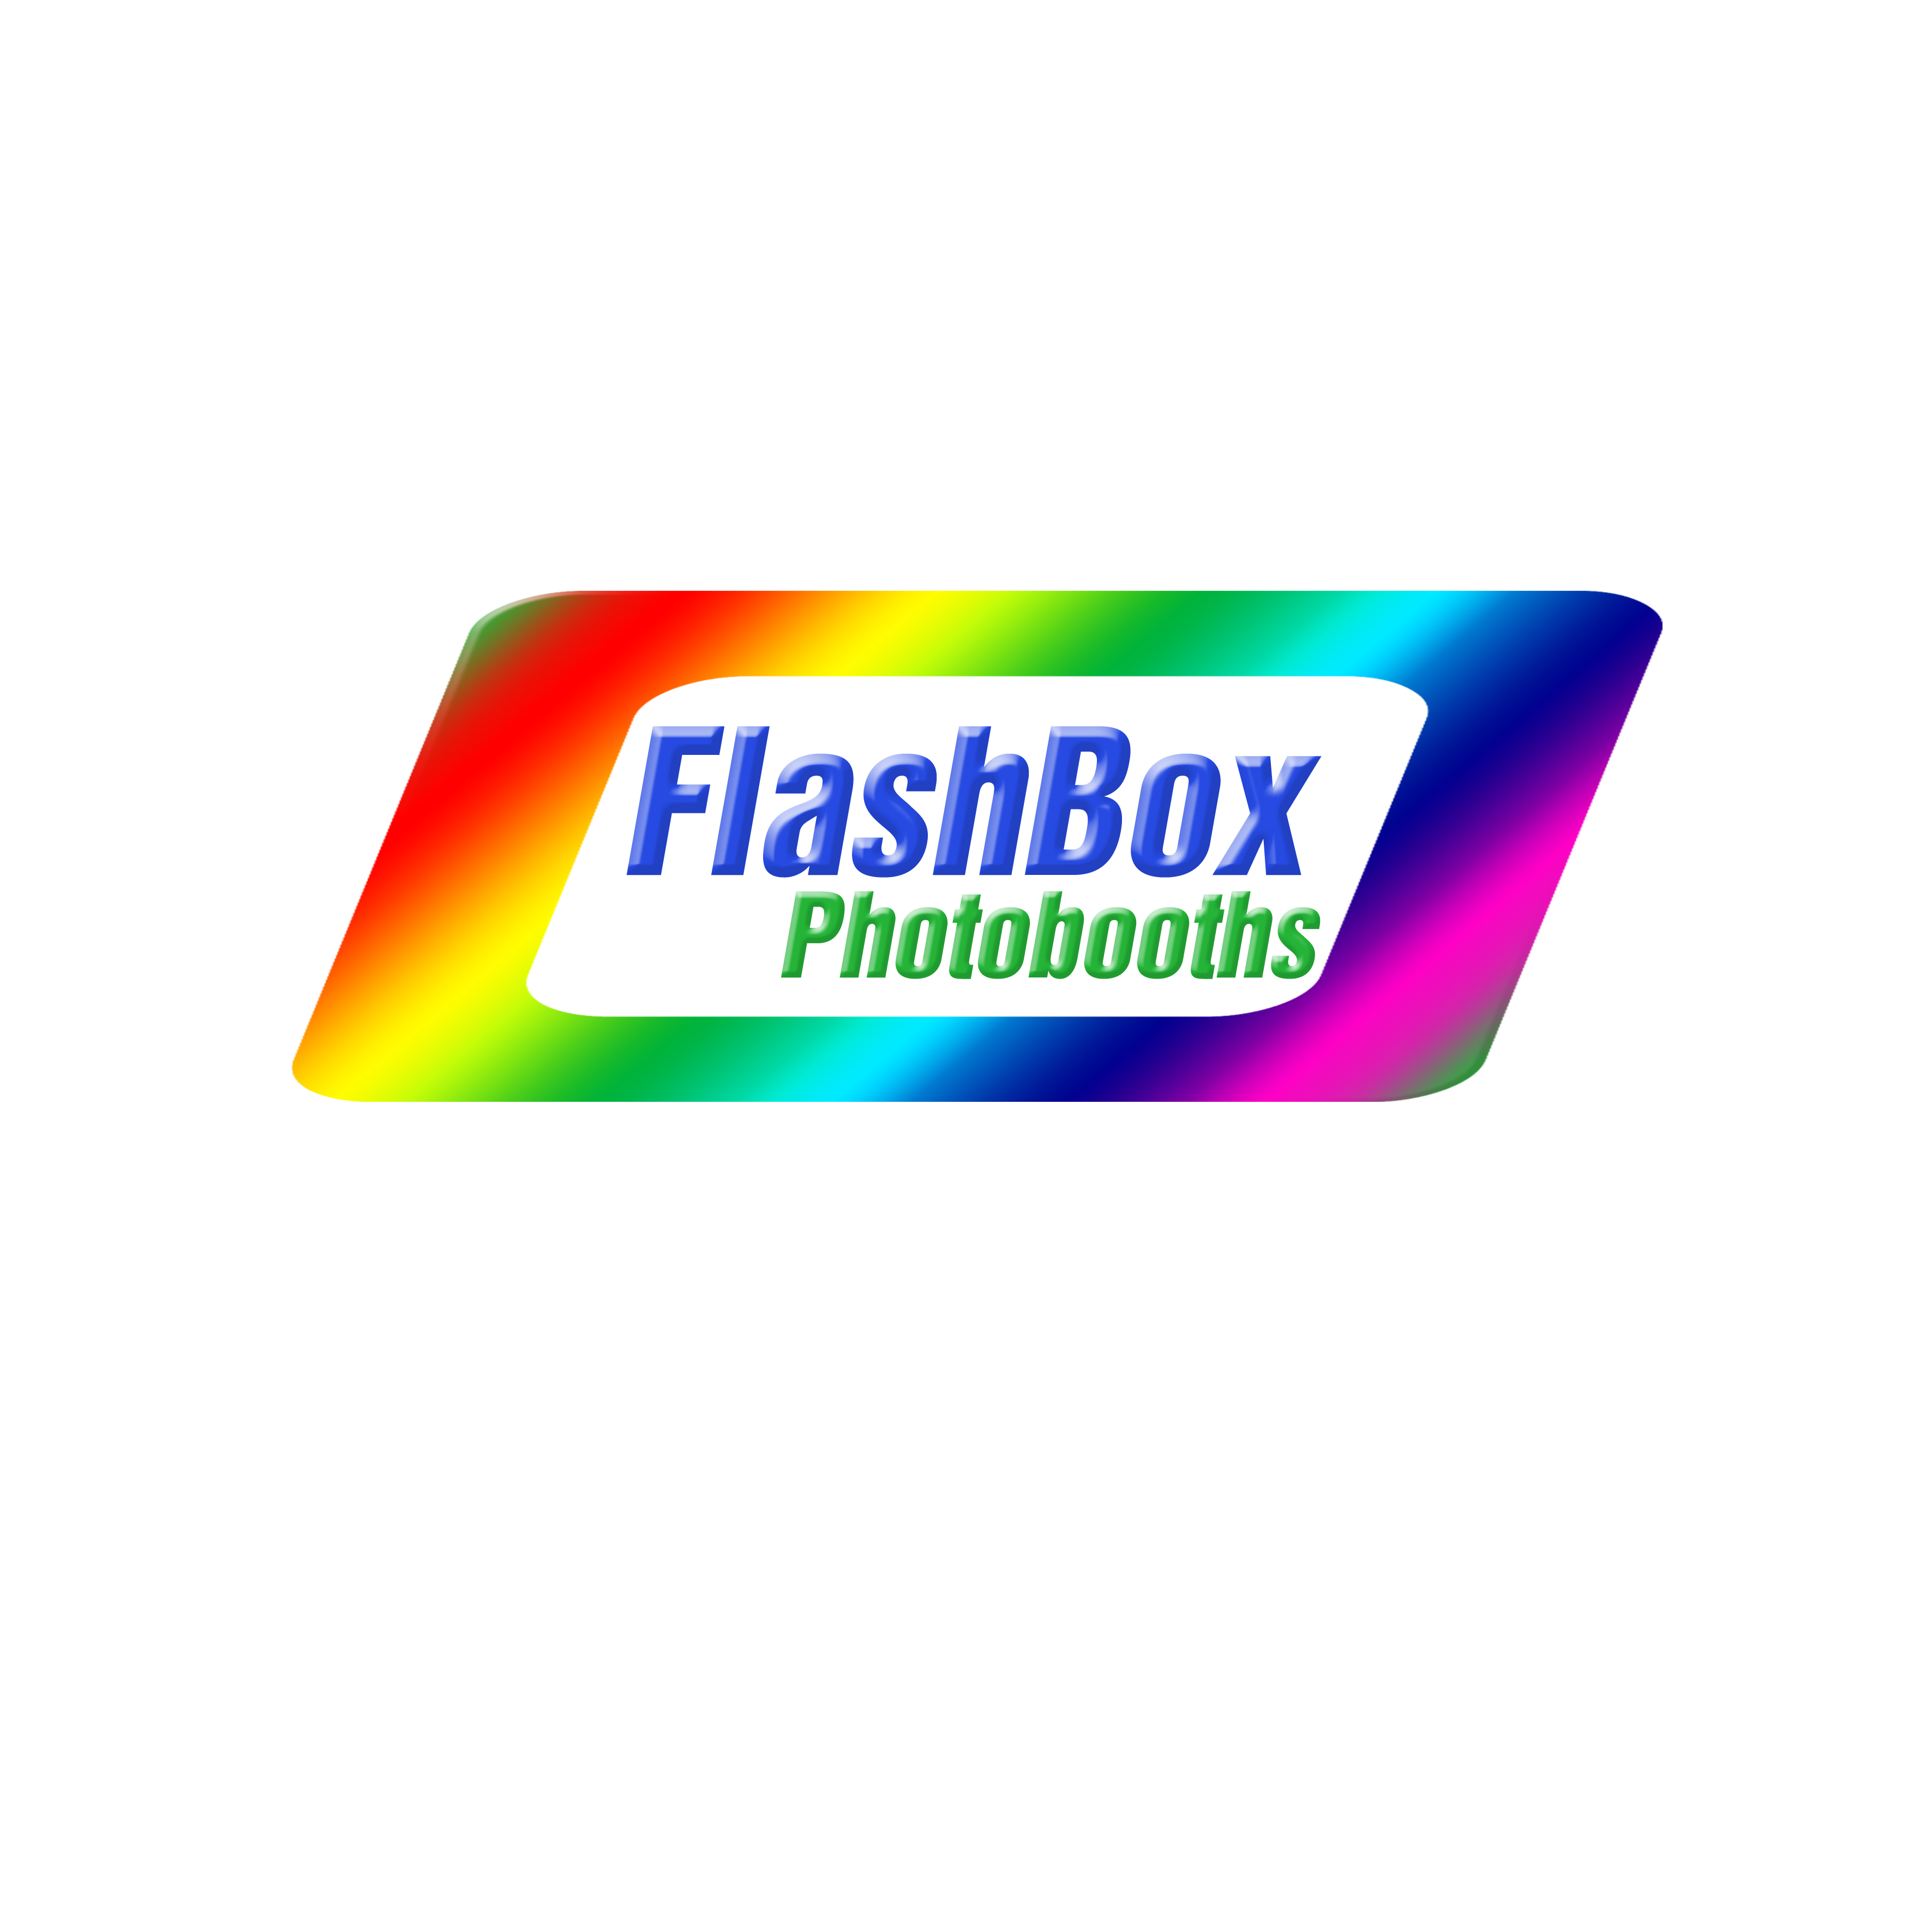 Logo Design by Roberto Sibbaluca - Entry No. 23 in the Logo Design Contest New Logo Design for FlashBox Photobooths.